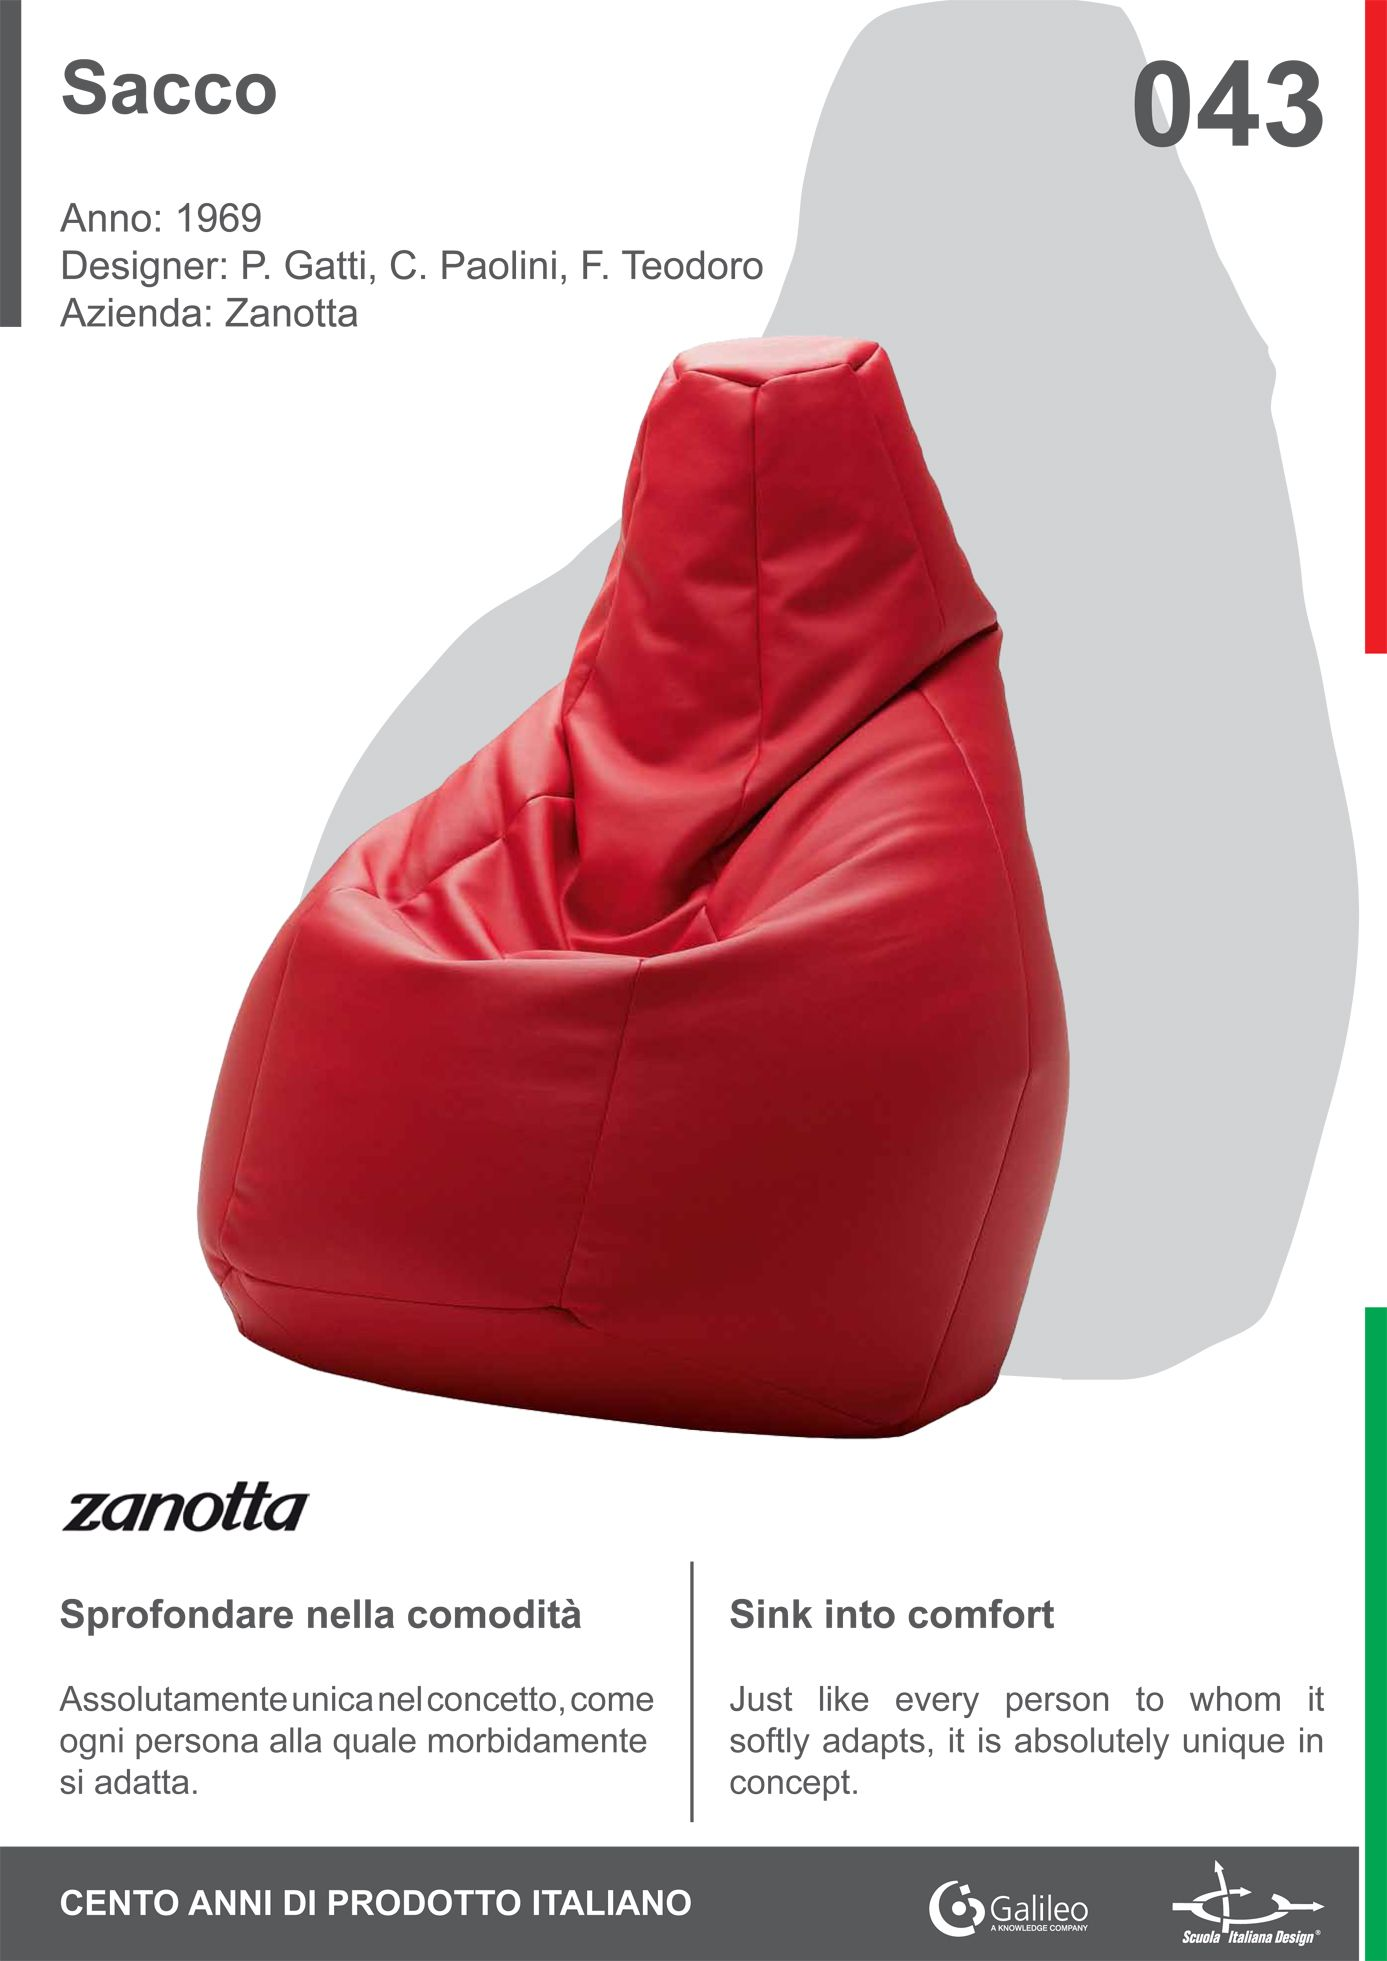 Zanotta Sitzsack sacco by gatti paolini teodoro for zanotta 1969 my other